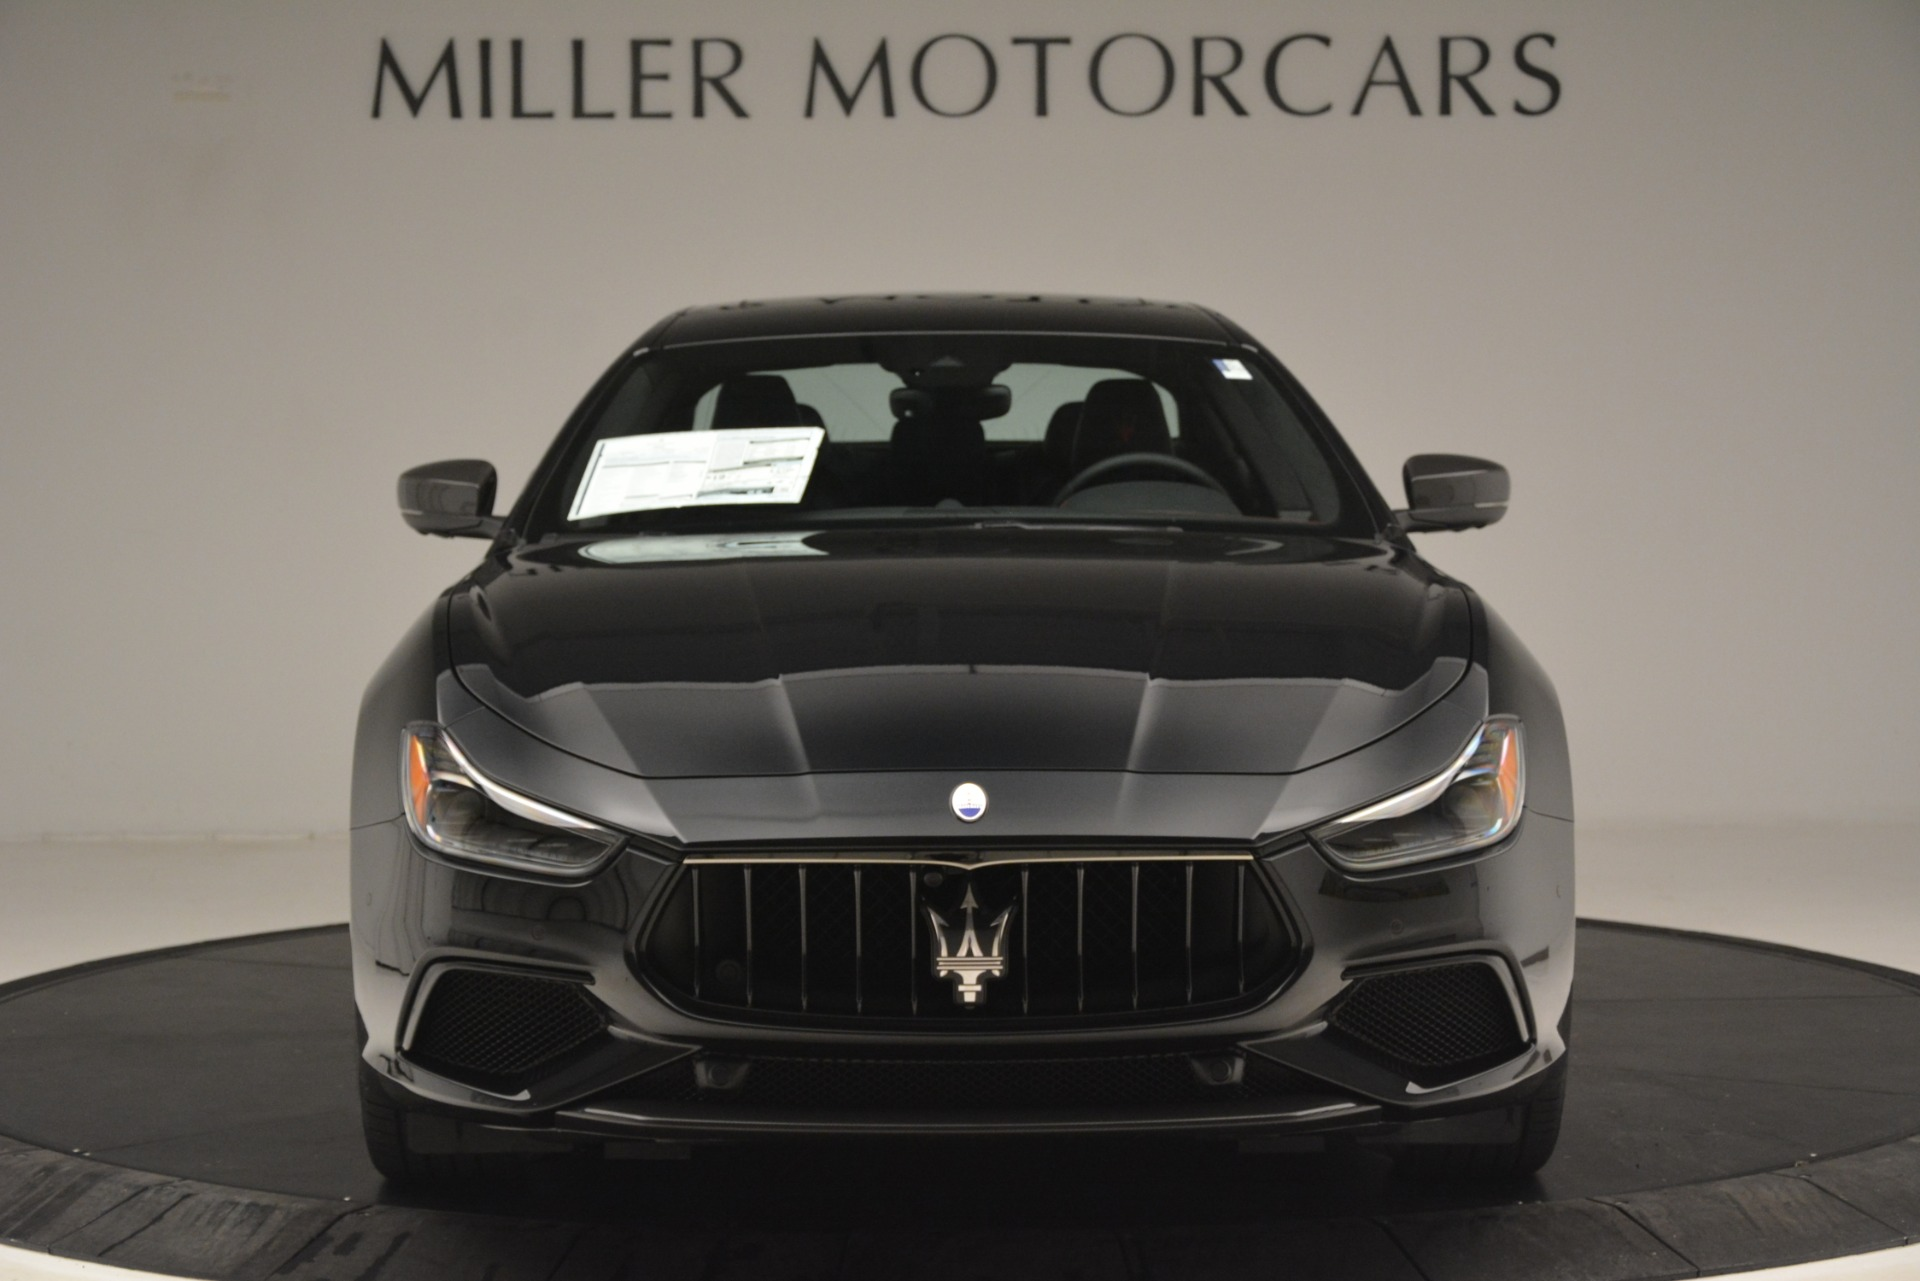 New 2019 Maserati Ghibli S Q4 GranSport For Sale In Westport, CT 2924_p12